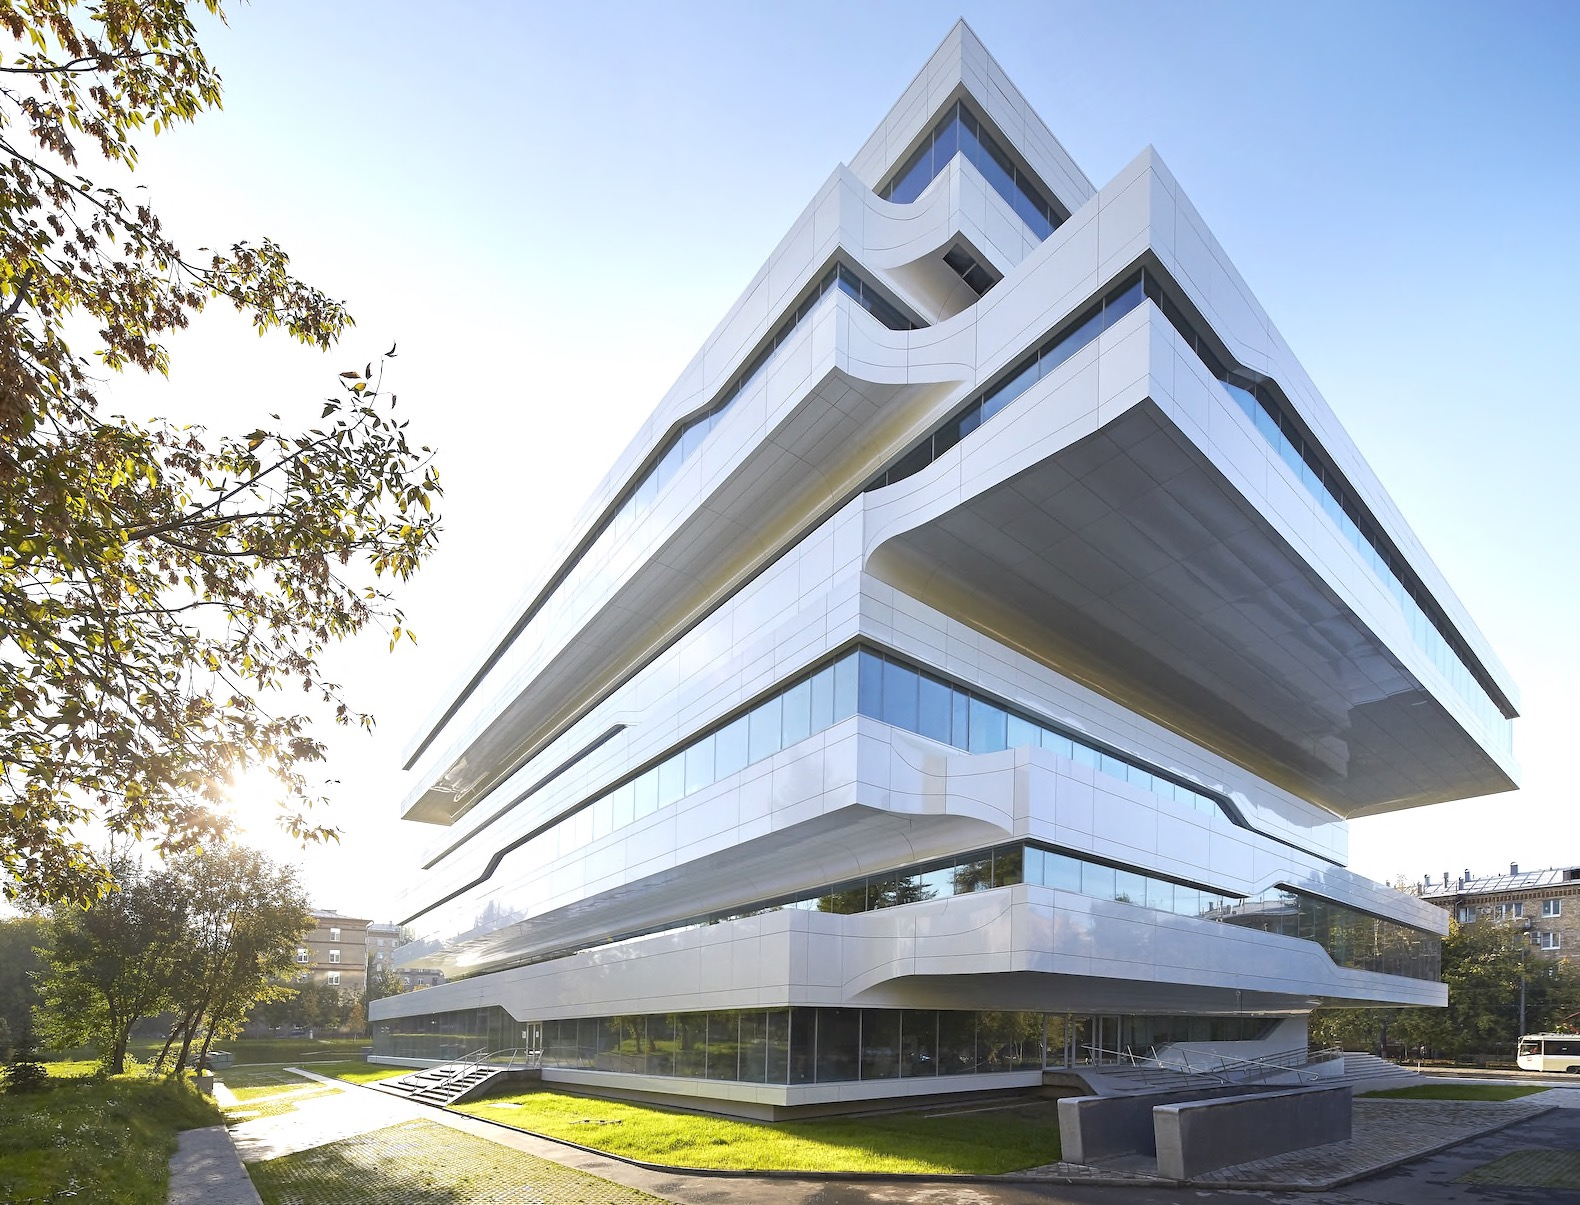 architectural buildings designs. Zaha Hadid\u0027s Dominion Office Building In Moscow Boasts A Space-age Interior Architectural Buildings Designs